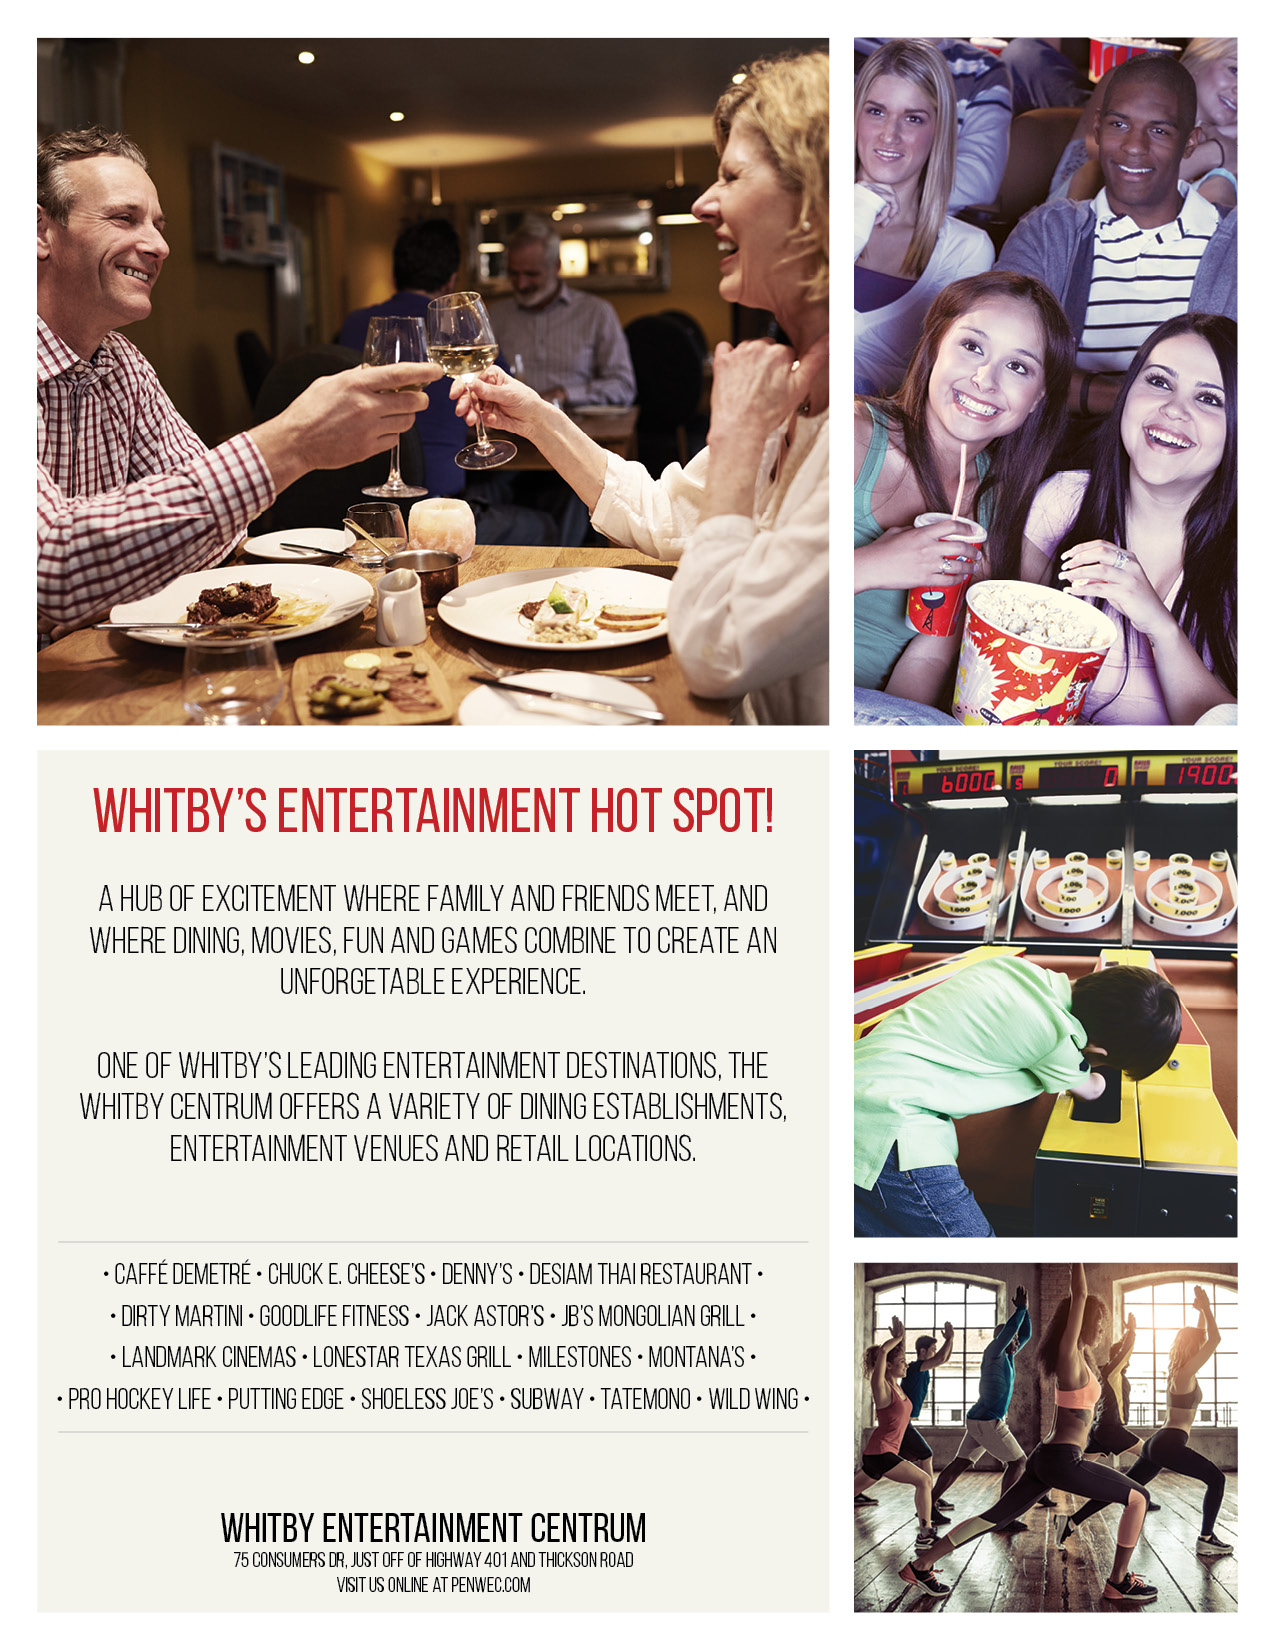 magazine ad for Whitby Entertainment Centrum